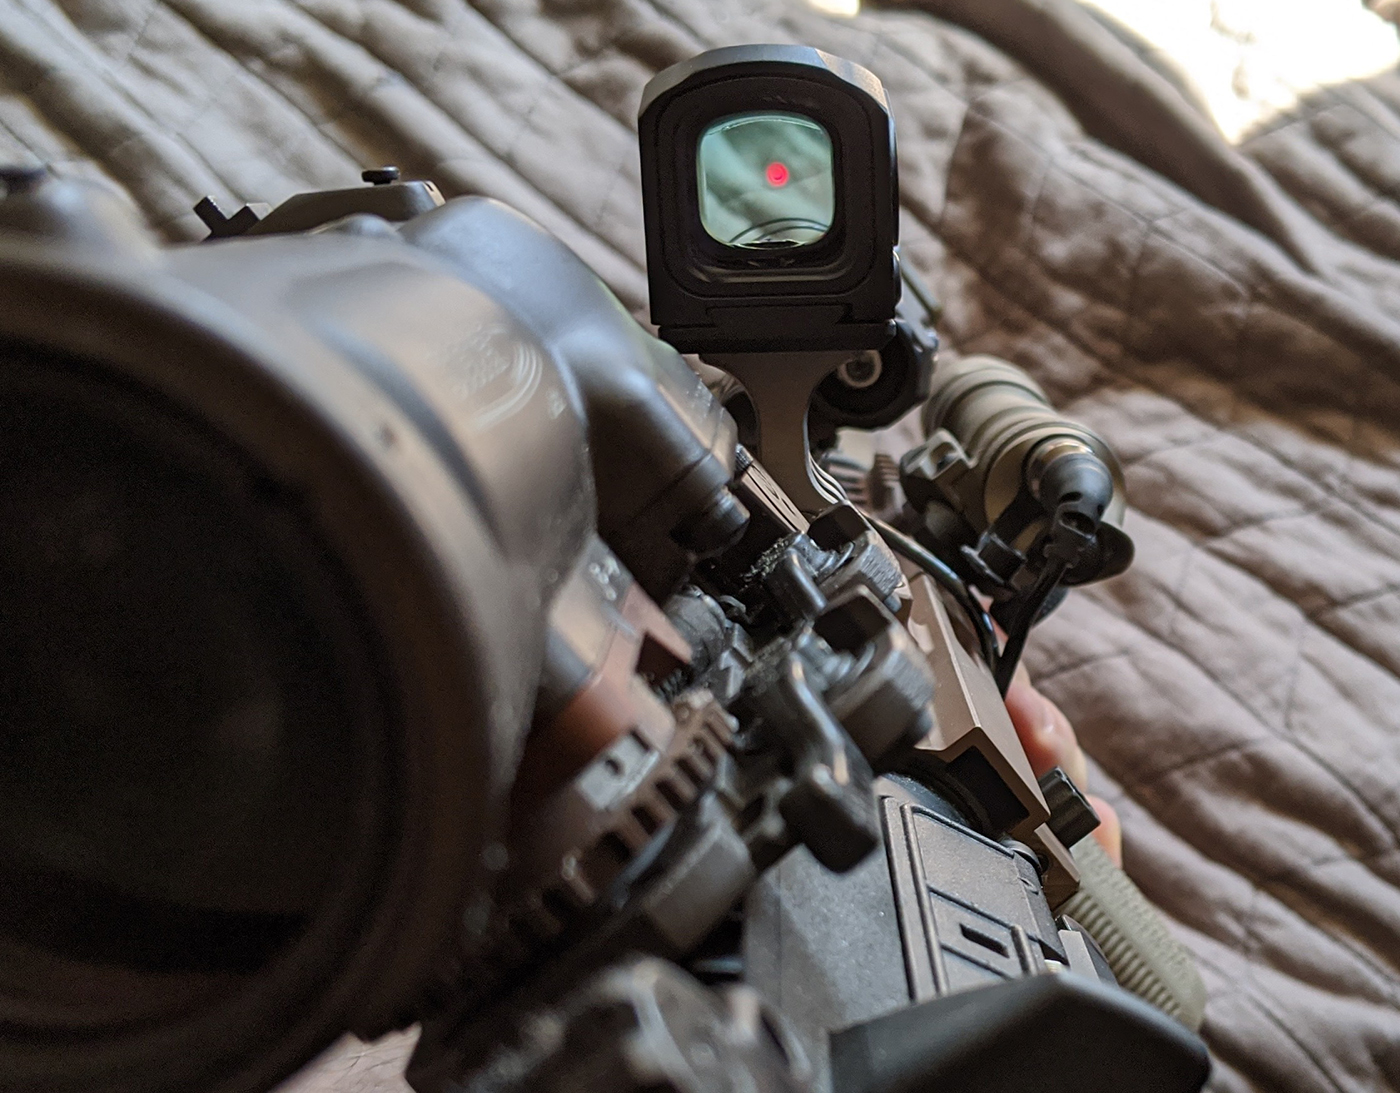 Relationship between MAWL laser and offset sight mount with Acro P-1 on CQB configured HK416.